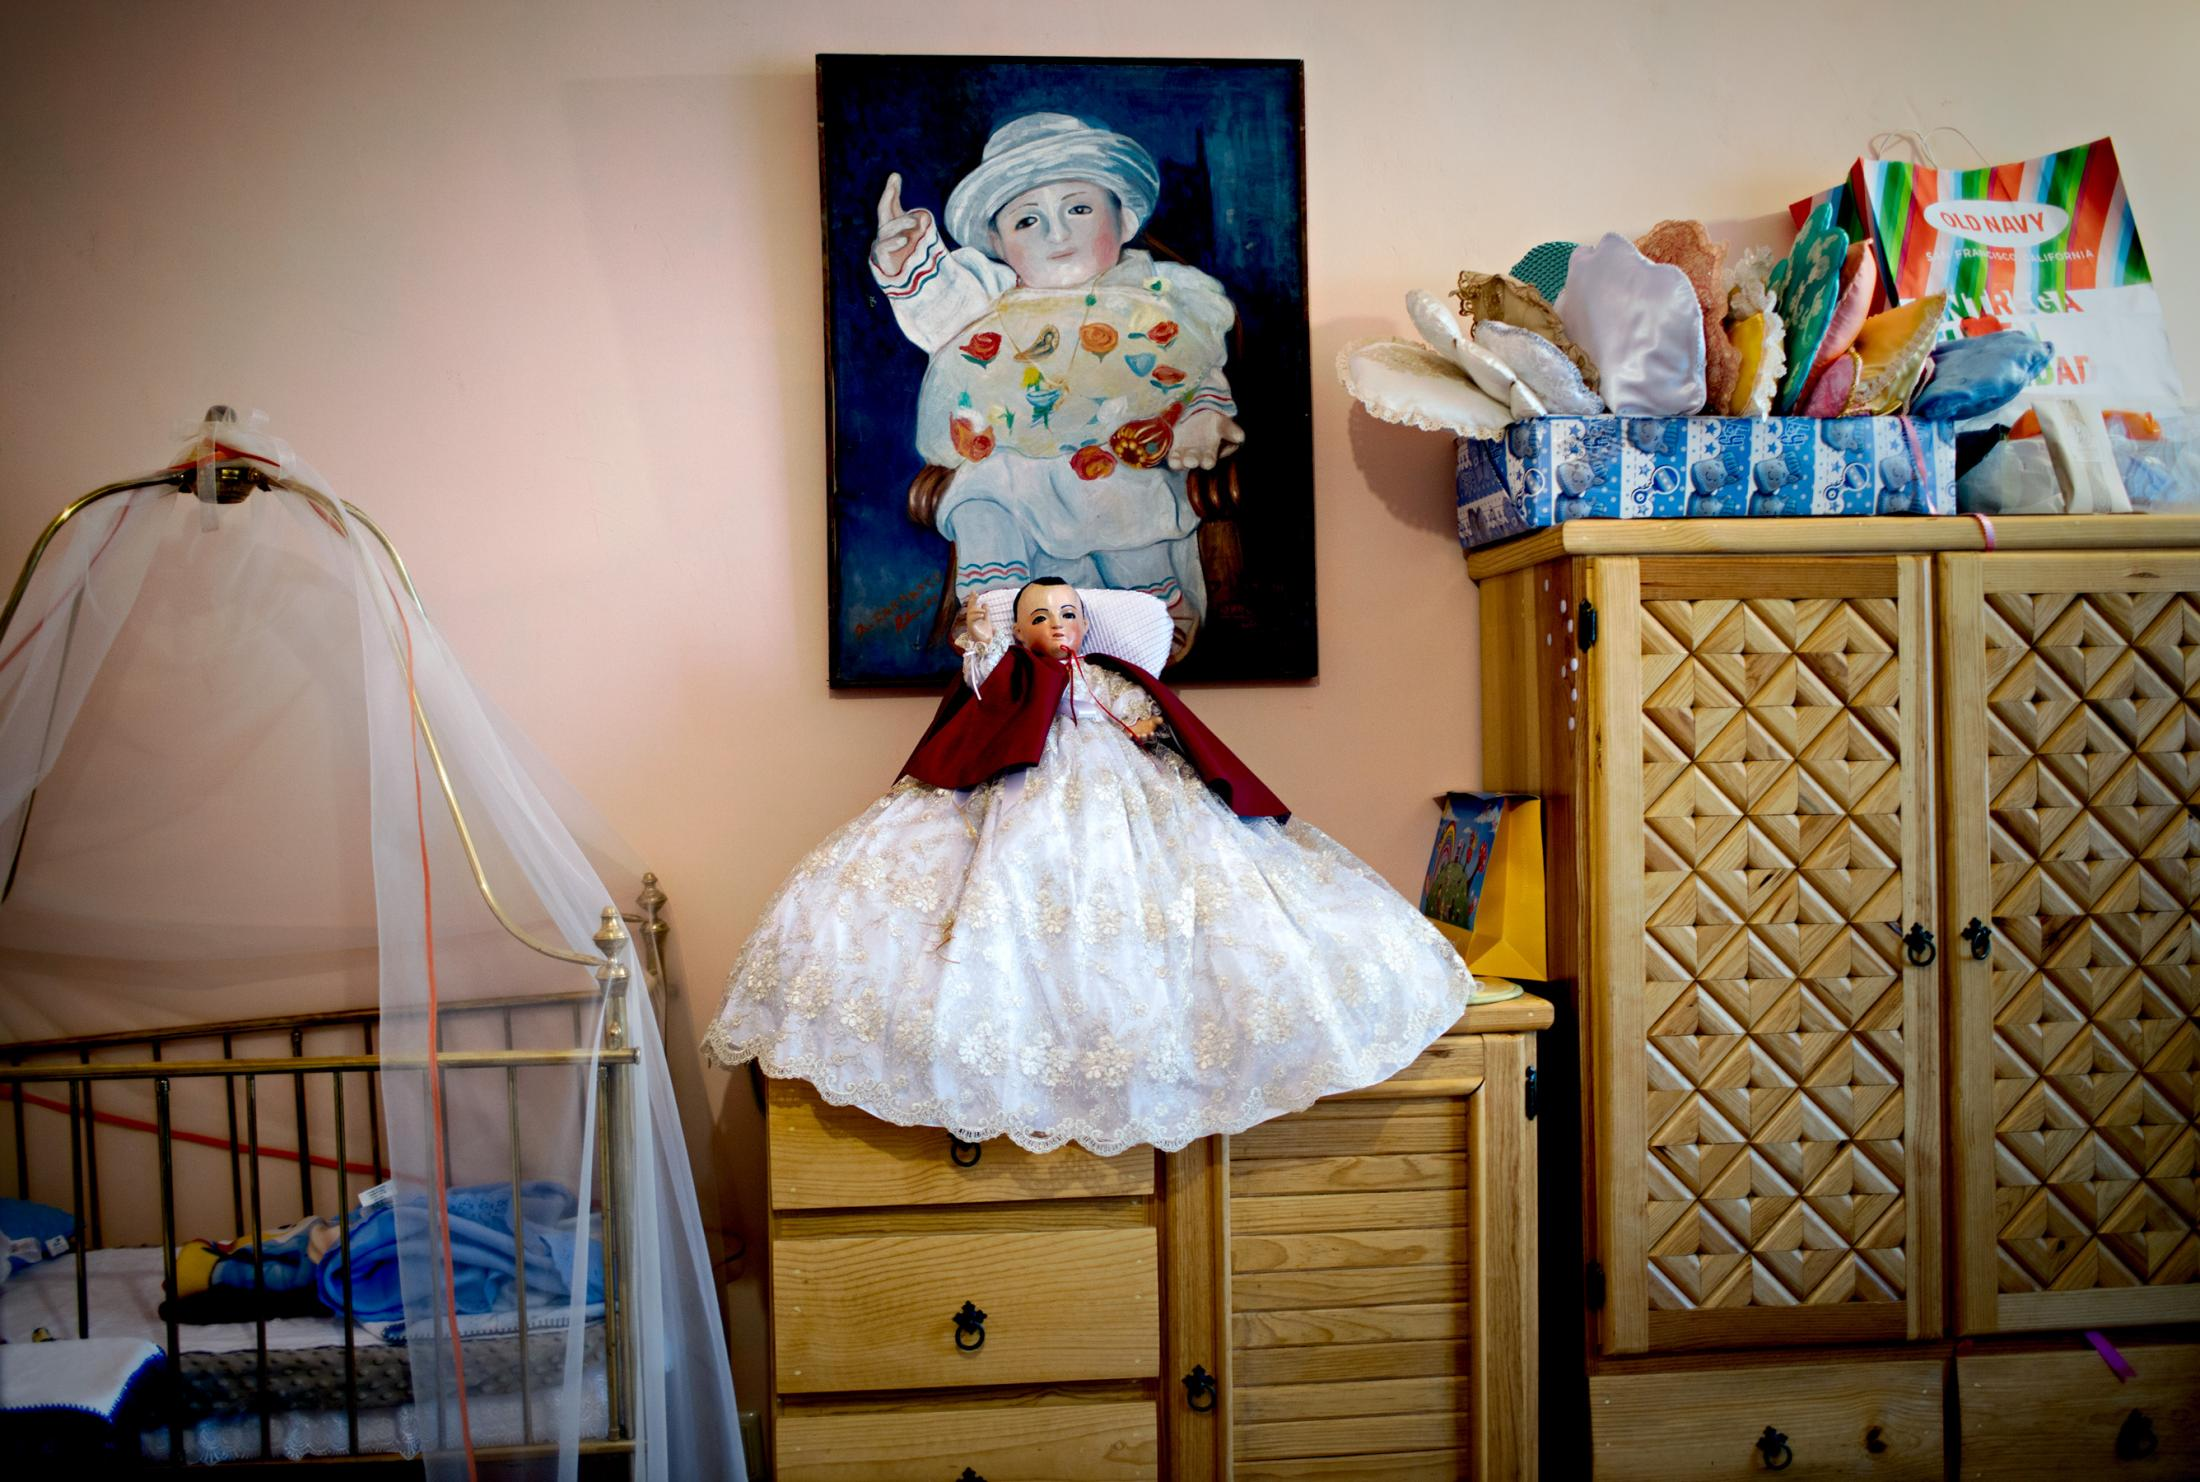 To protect Niñopa's privacy, photography in his bedroom is forbidden. After obtaining special permission from the Majordomo, this photograph was taken with permission which shows the crib in which Niñopa sleeps every night and partially shows his wardrobe.